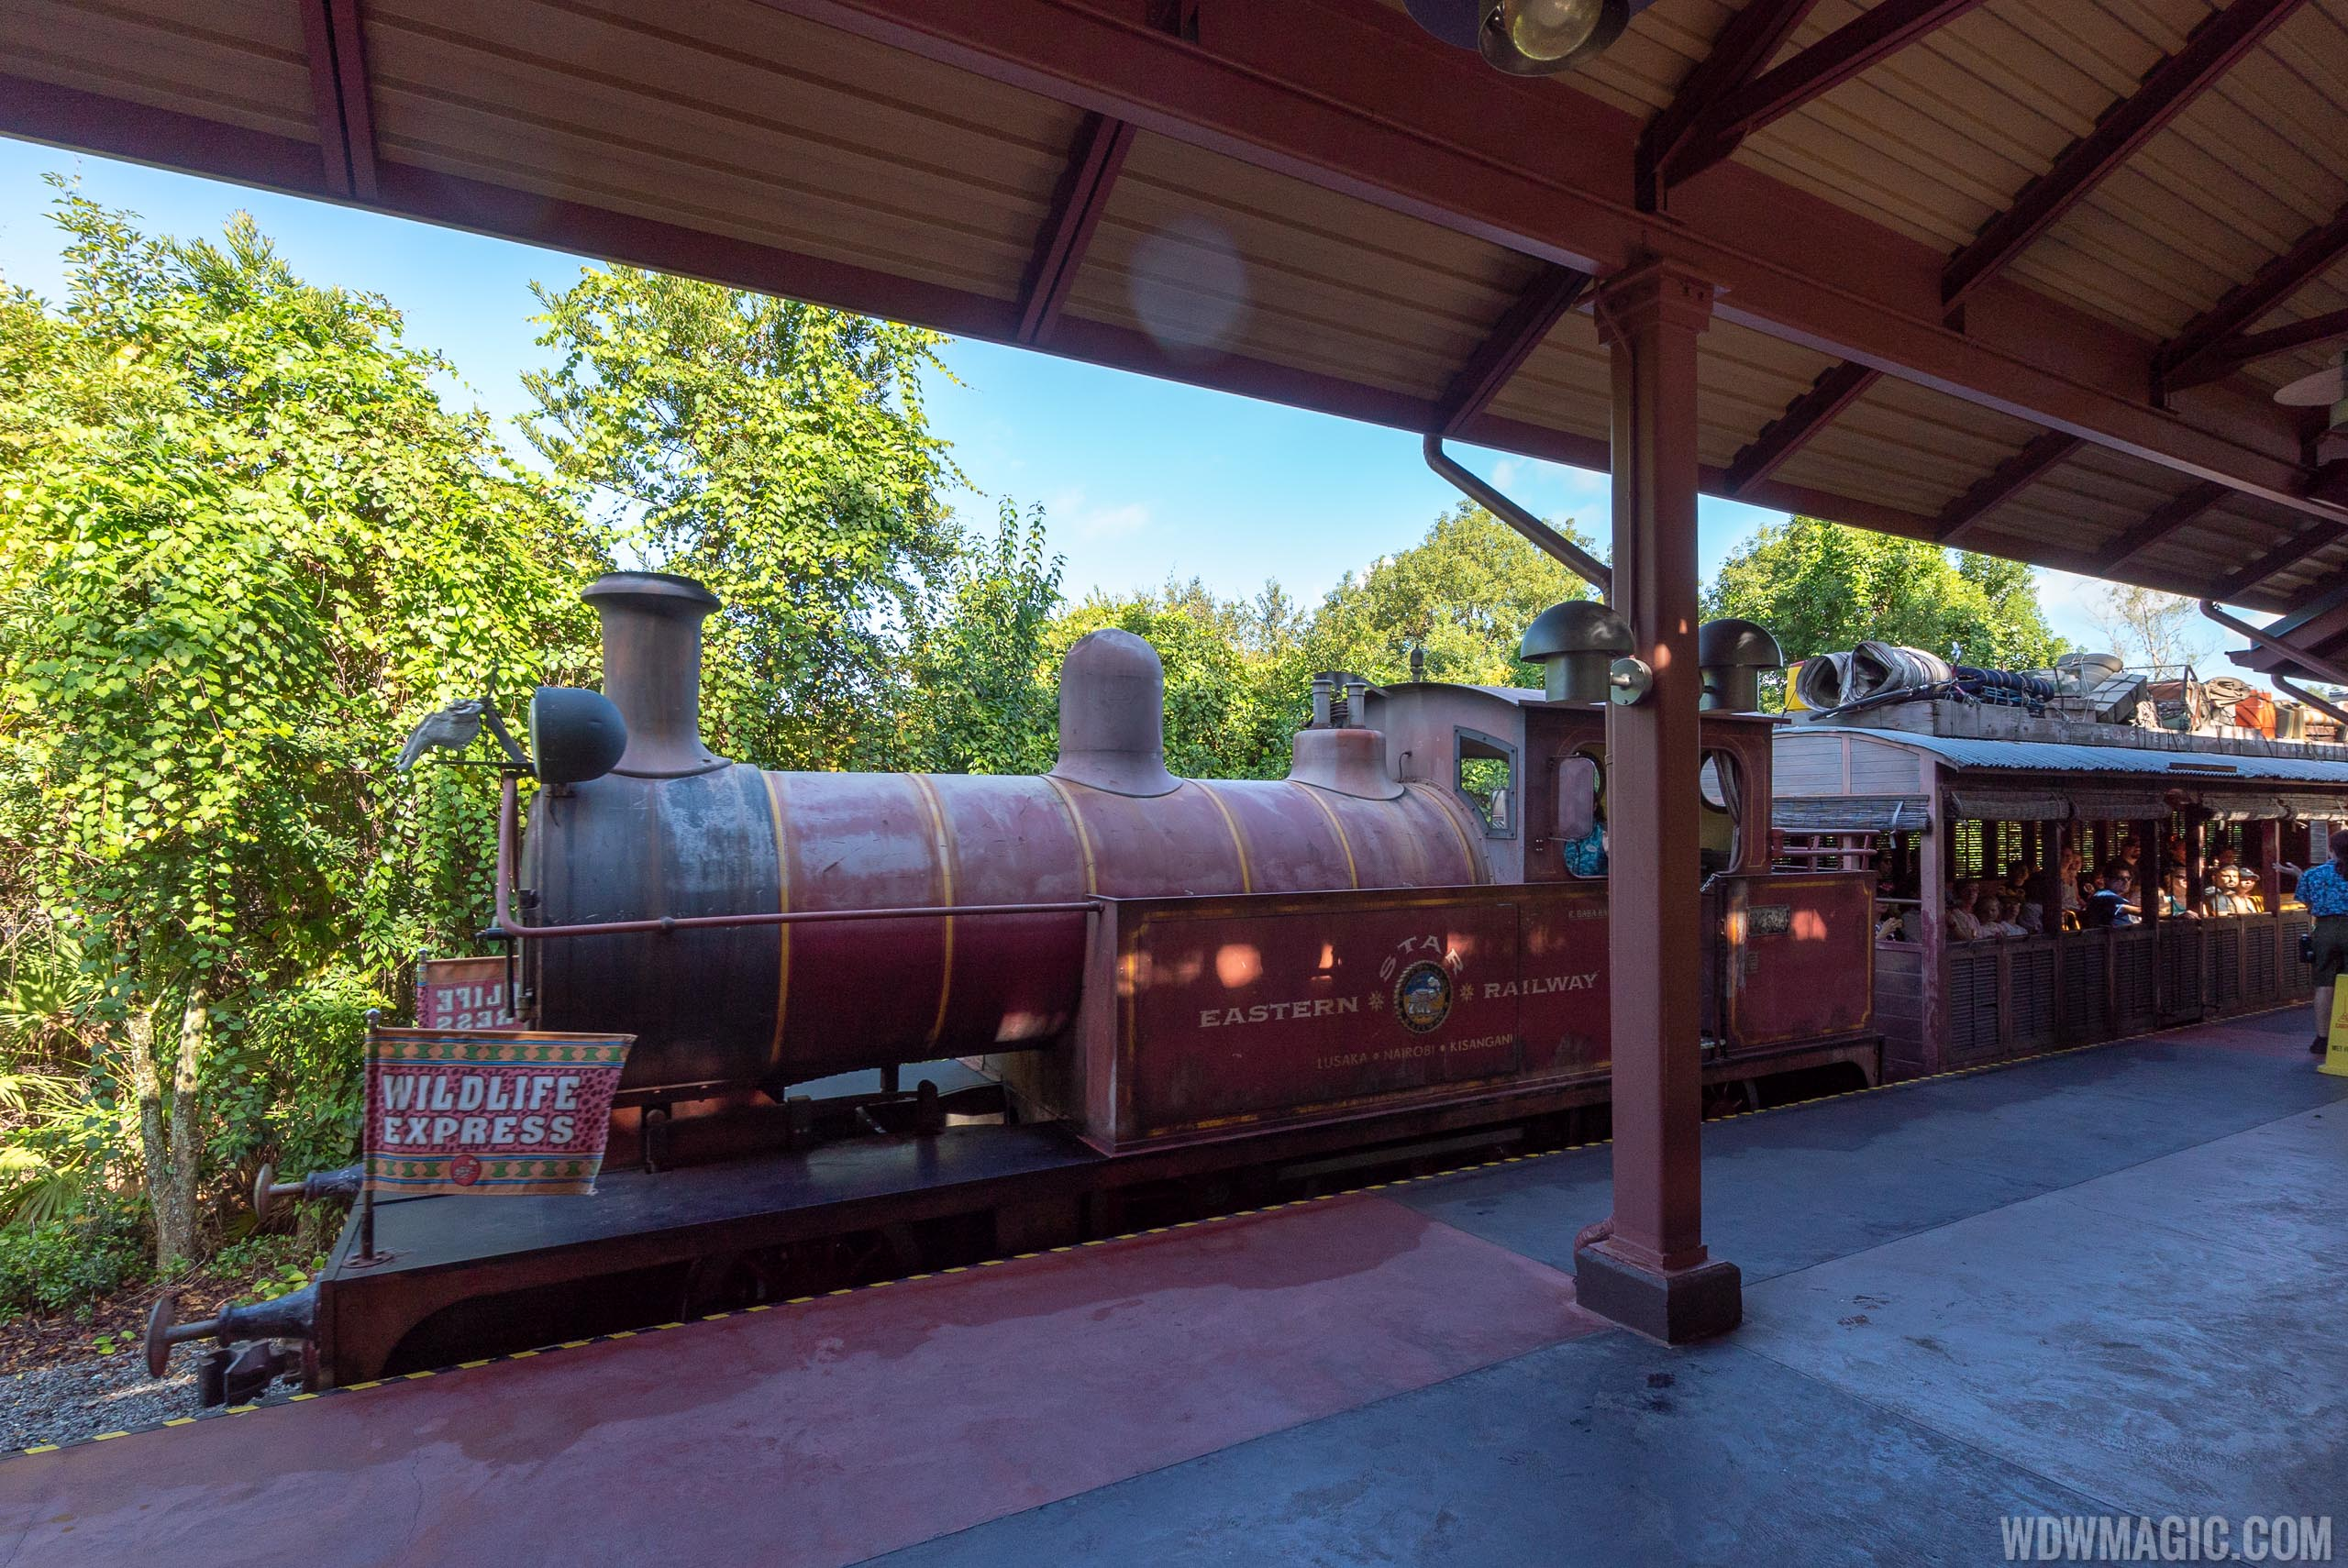 The Wildlife Express Train Station is the start of Circle of Flavors